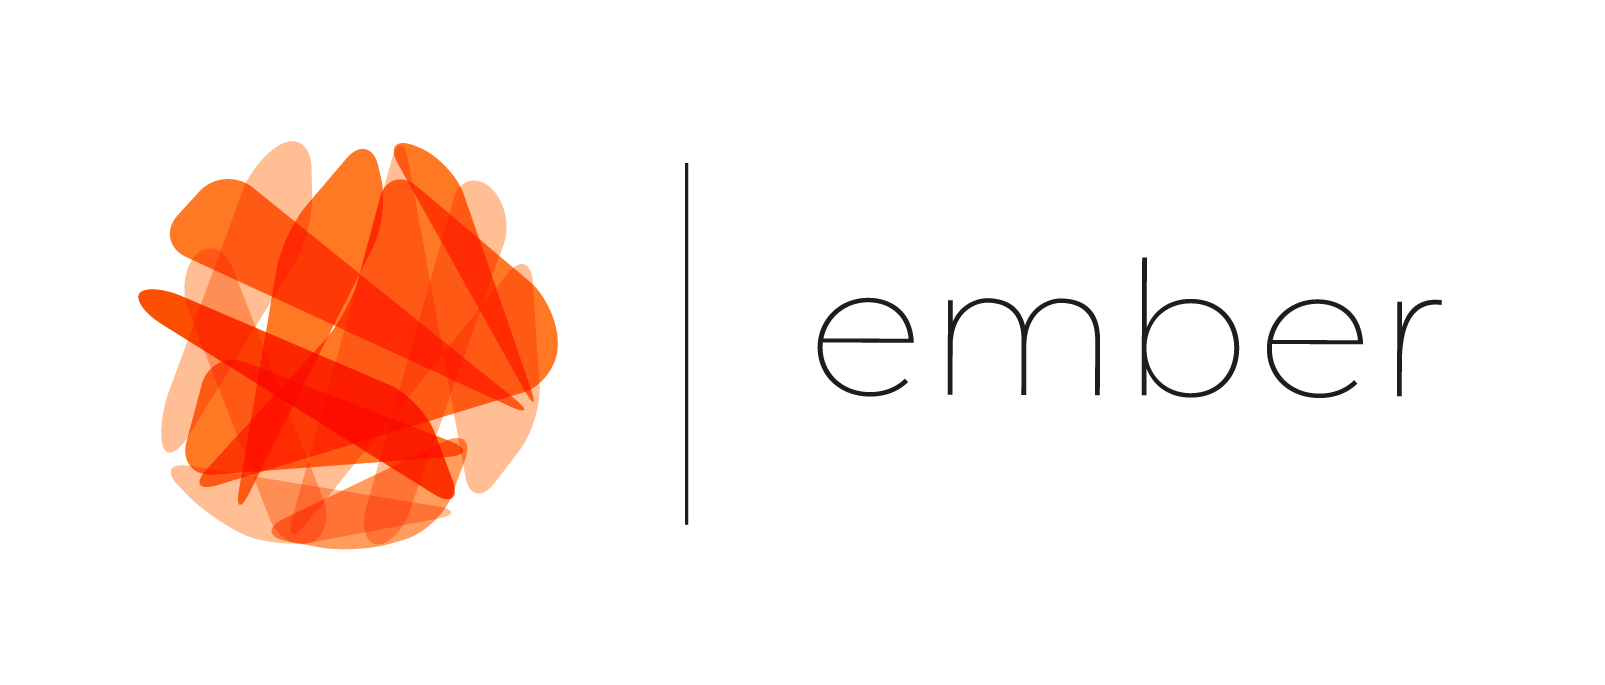 Introducing Ember